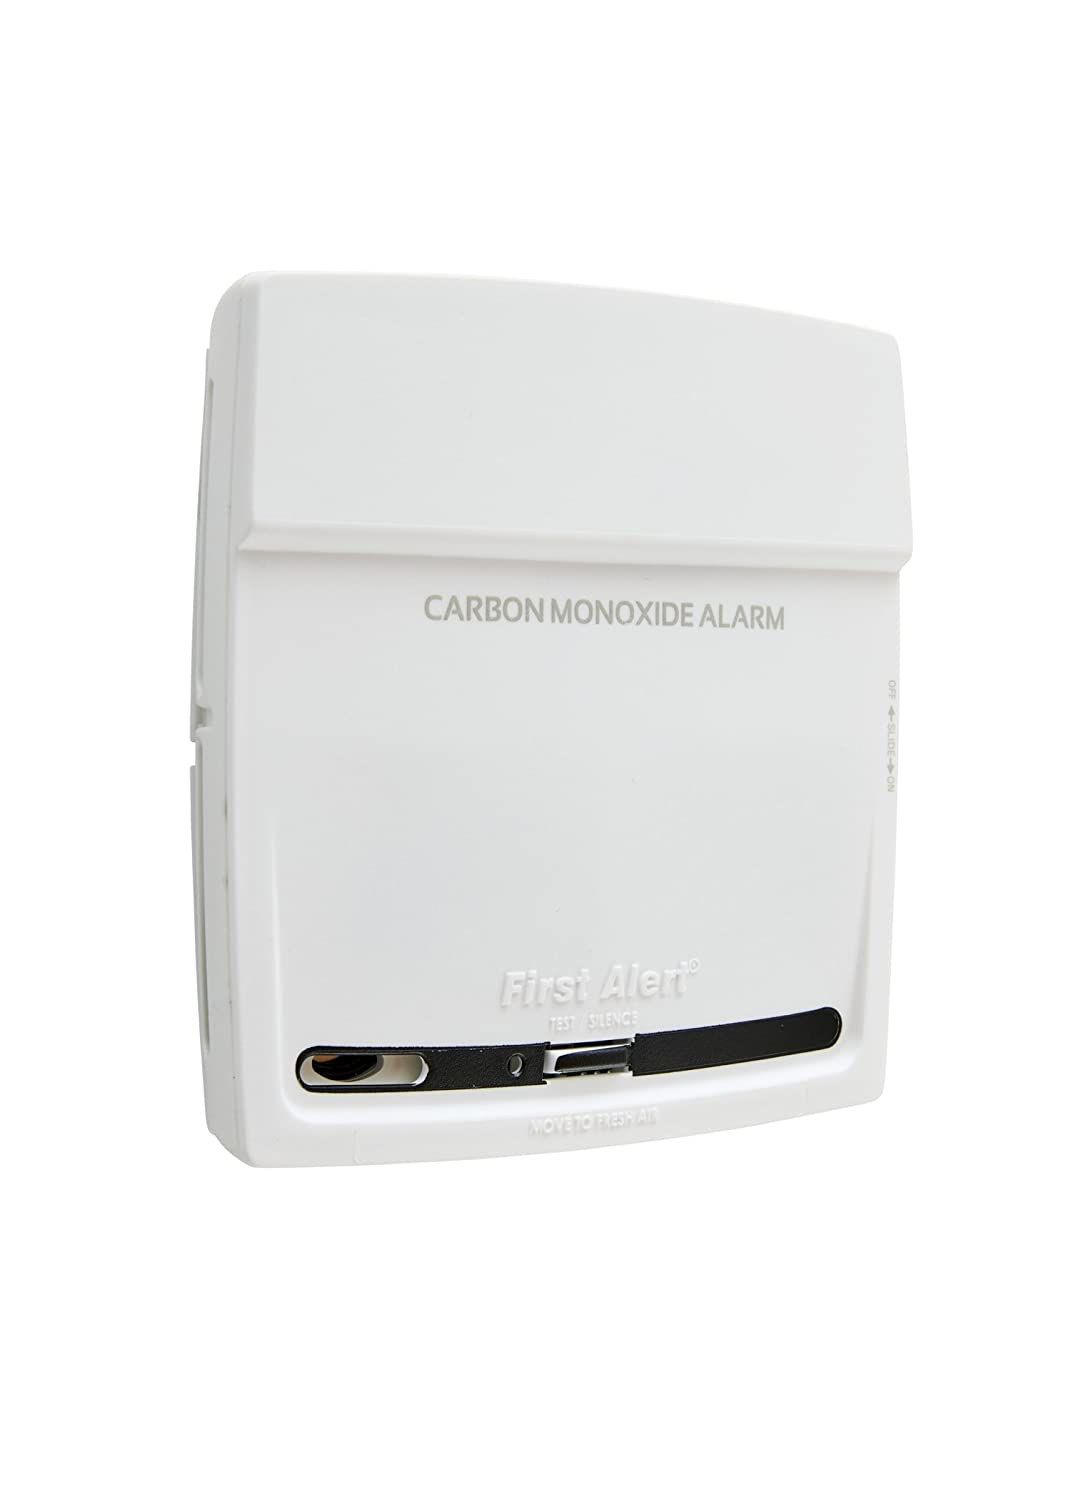 First Alert CO910 10 Year Carbon Monoxide Alarm White